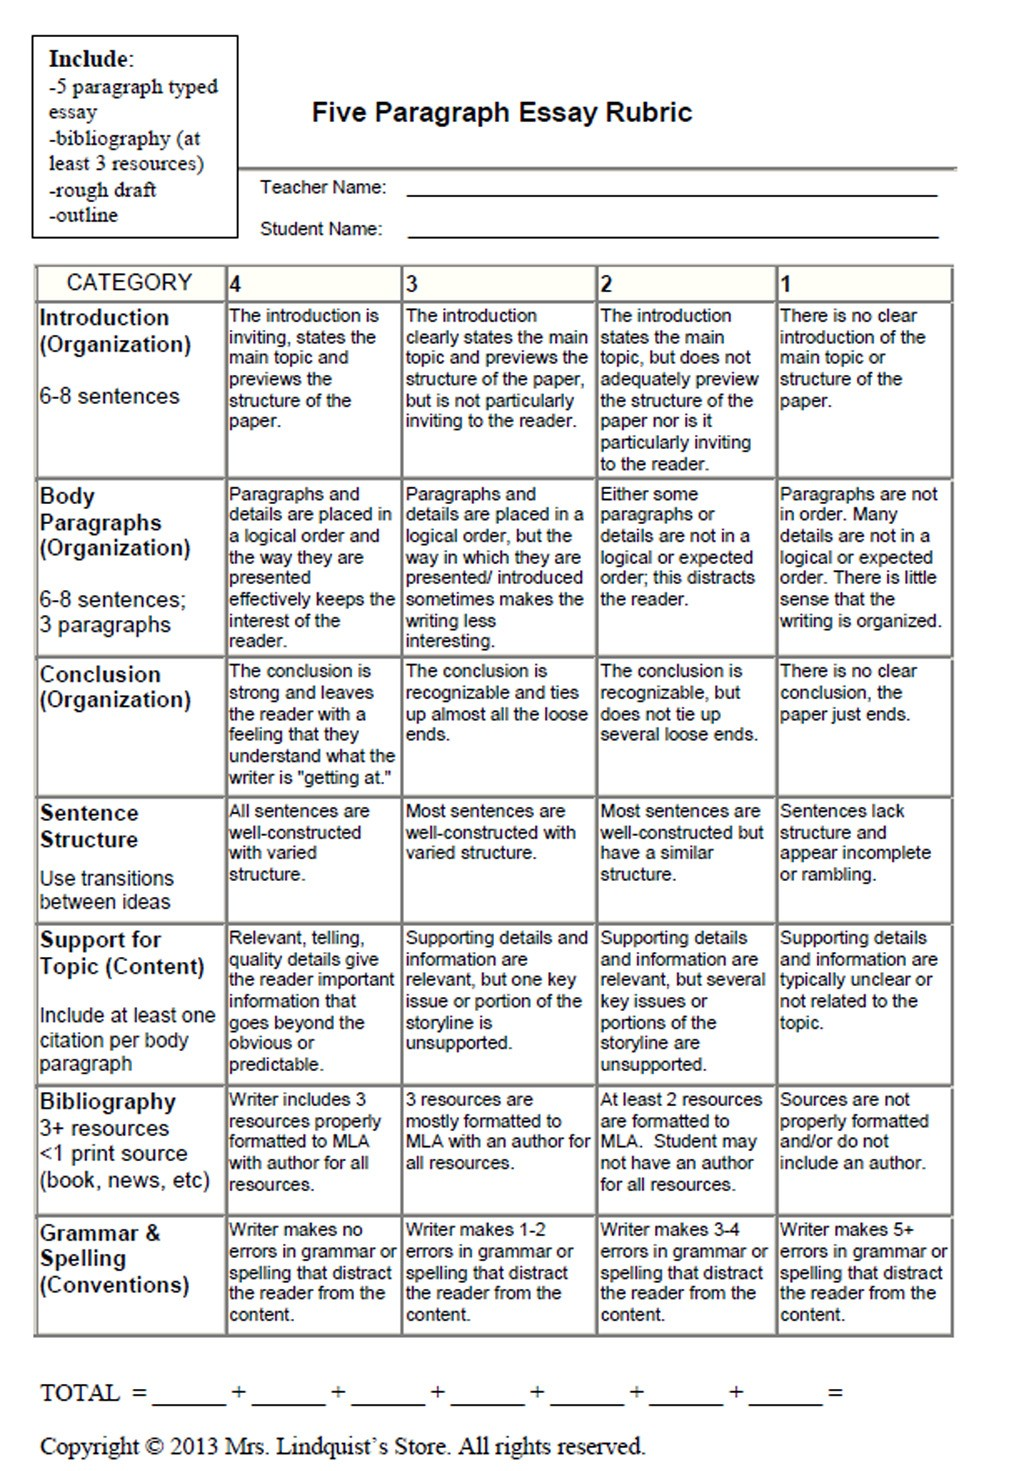 023 Graphic20organizers20and20rubrics20for20writing04 Large Rubrics In Essay Writing Formidable Holistic For Pdf Rubric Middle School Large